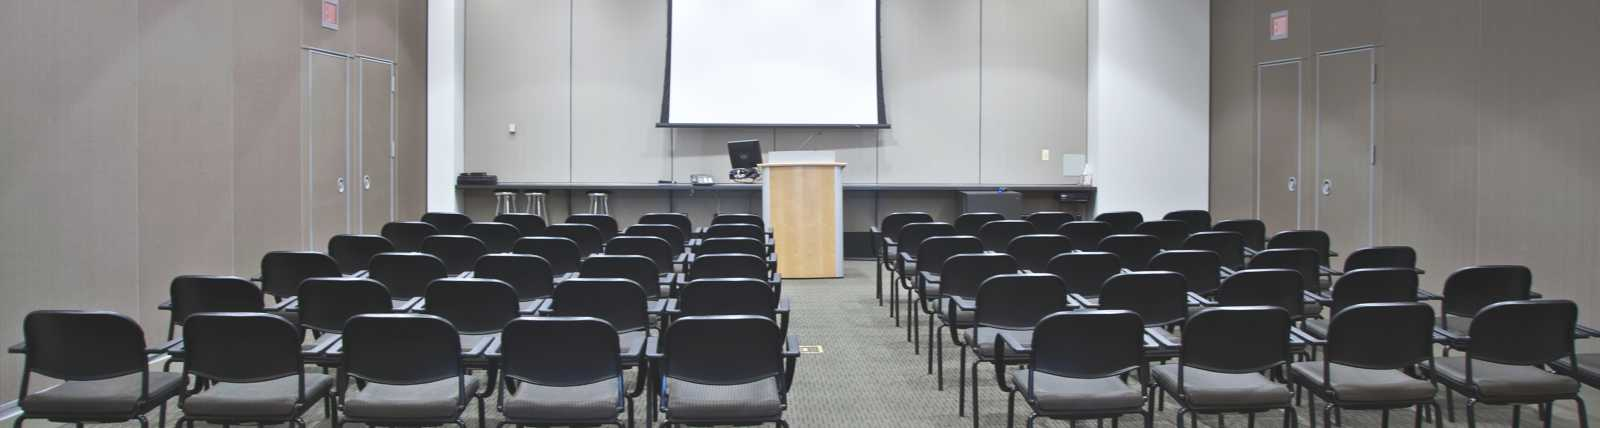 London Conference Room- Theater Style seating for 60